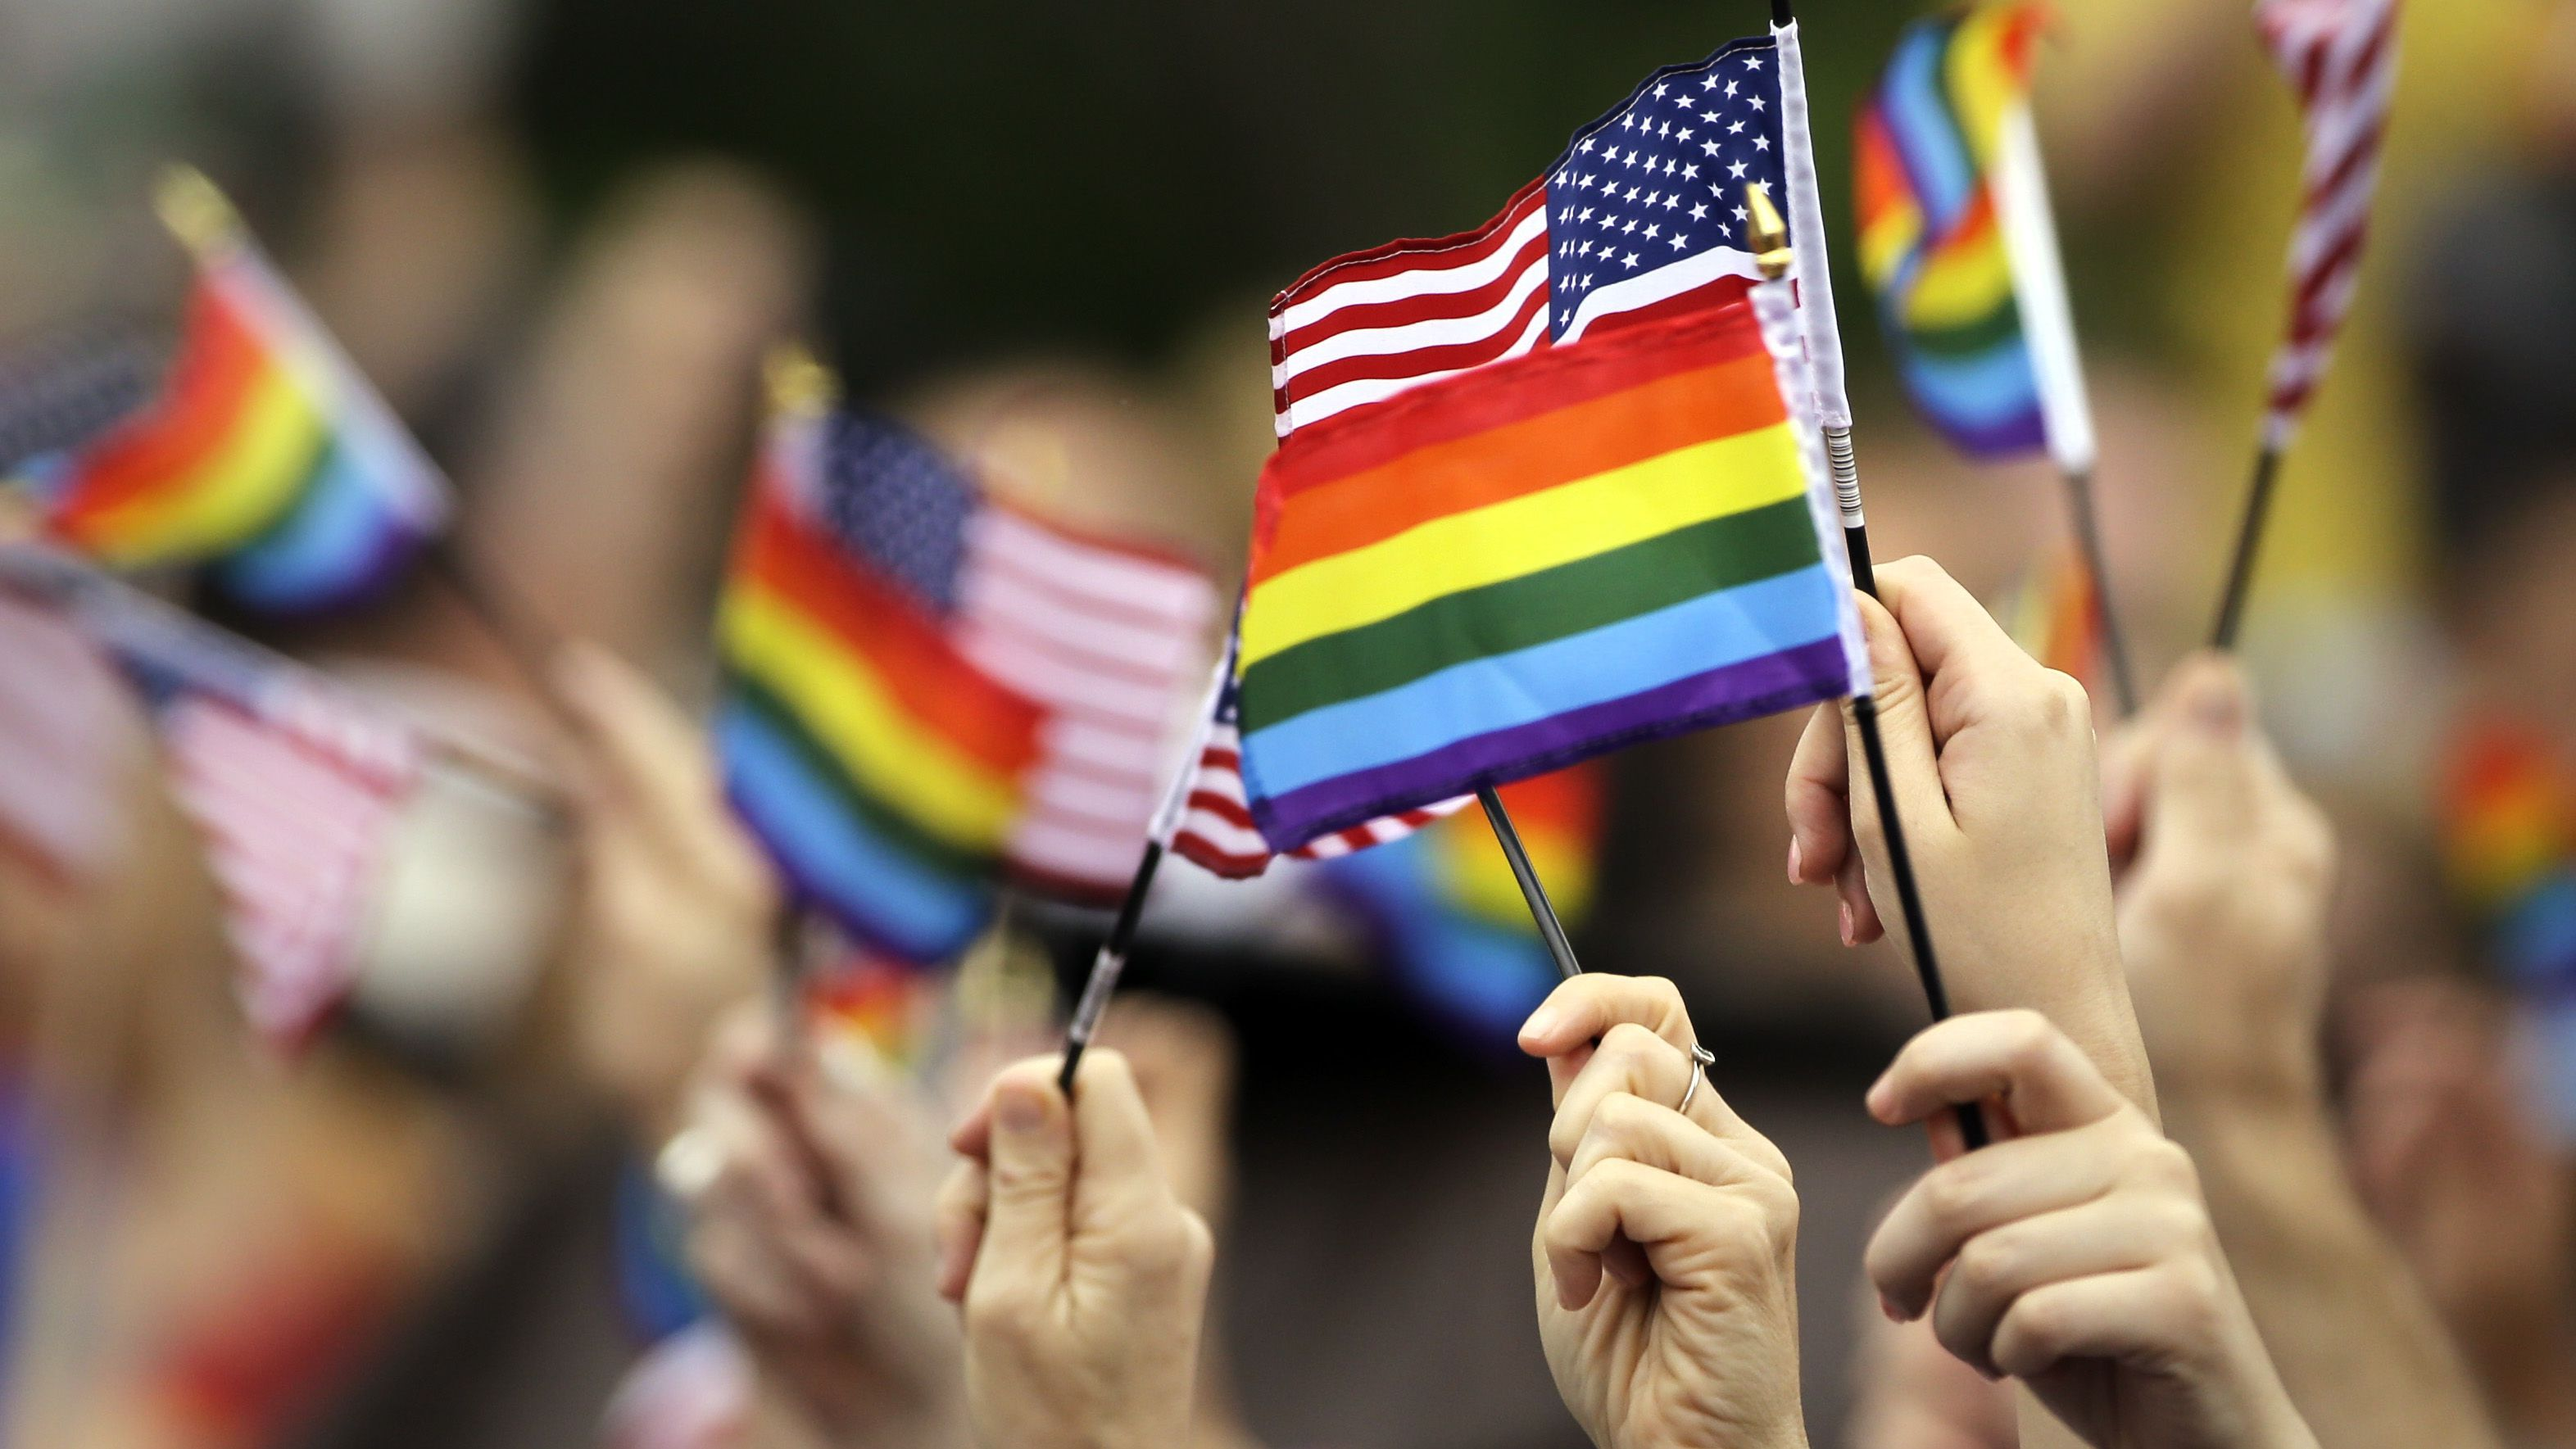 Flags are waved during the National LGBT 50th Anniversary Ceremony, Saturday, July 4, 2015, in front of Independence Hall in Philadelphia. The event marks the 50th anniversary of a protest outside Independence Hall that would be a milestone in the fight for gay rights. (AP Photo/Matt Rourke)